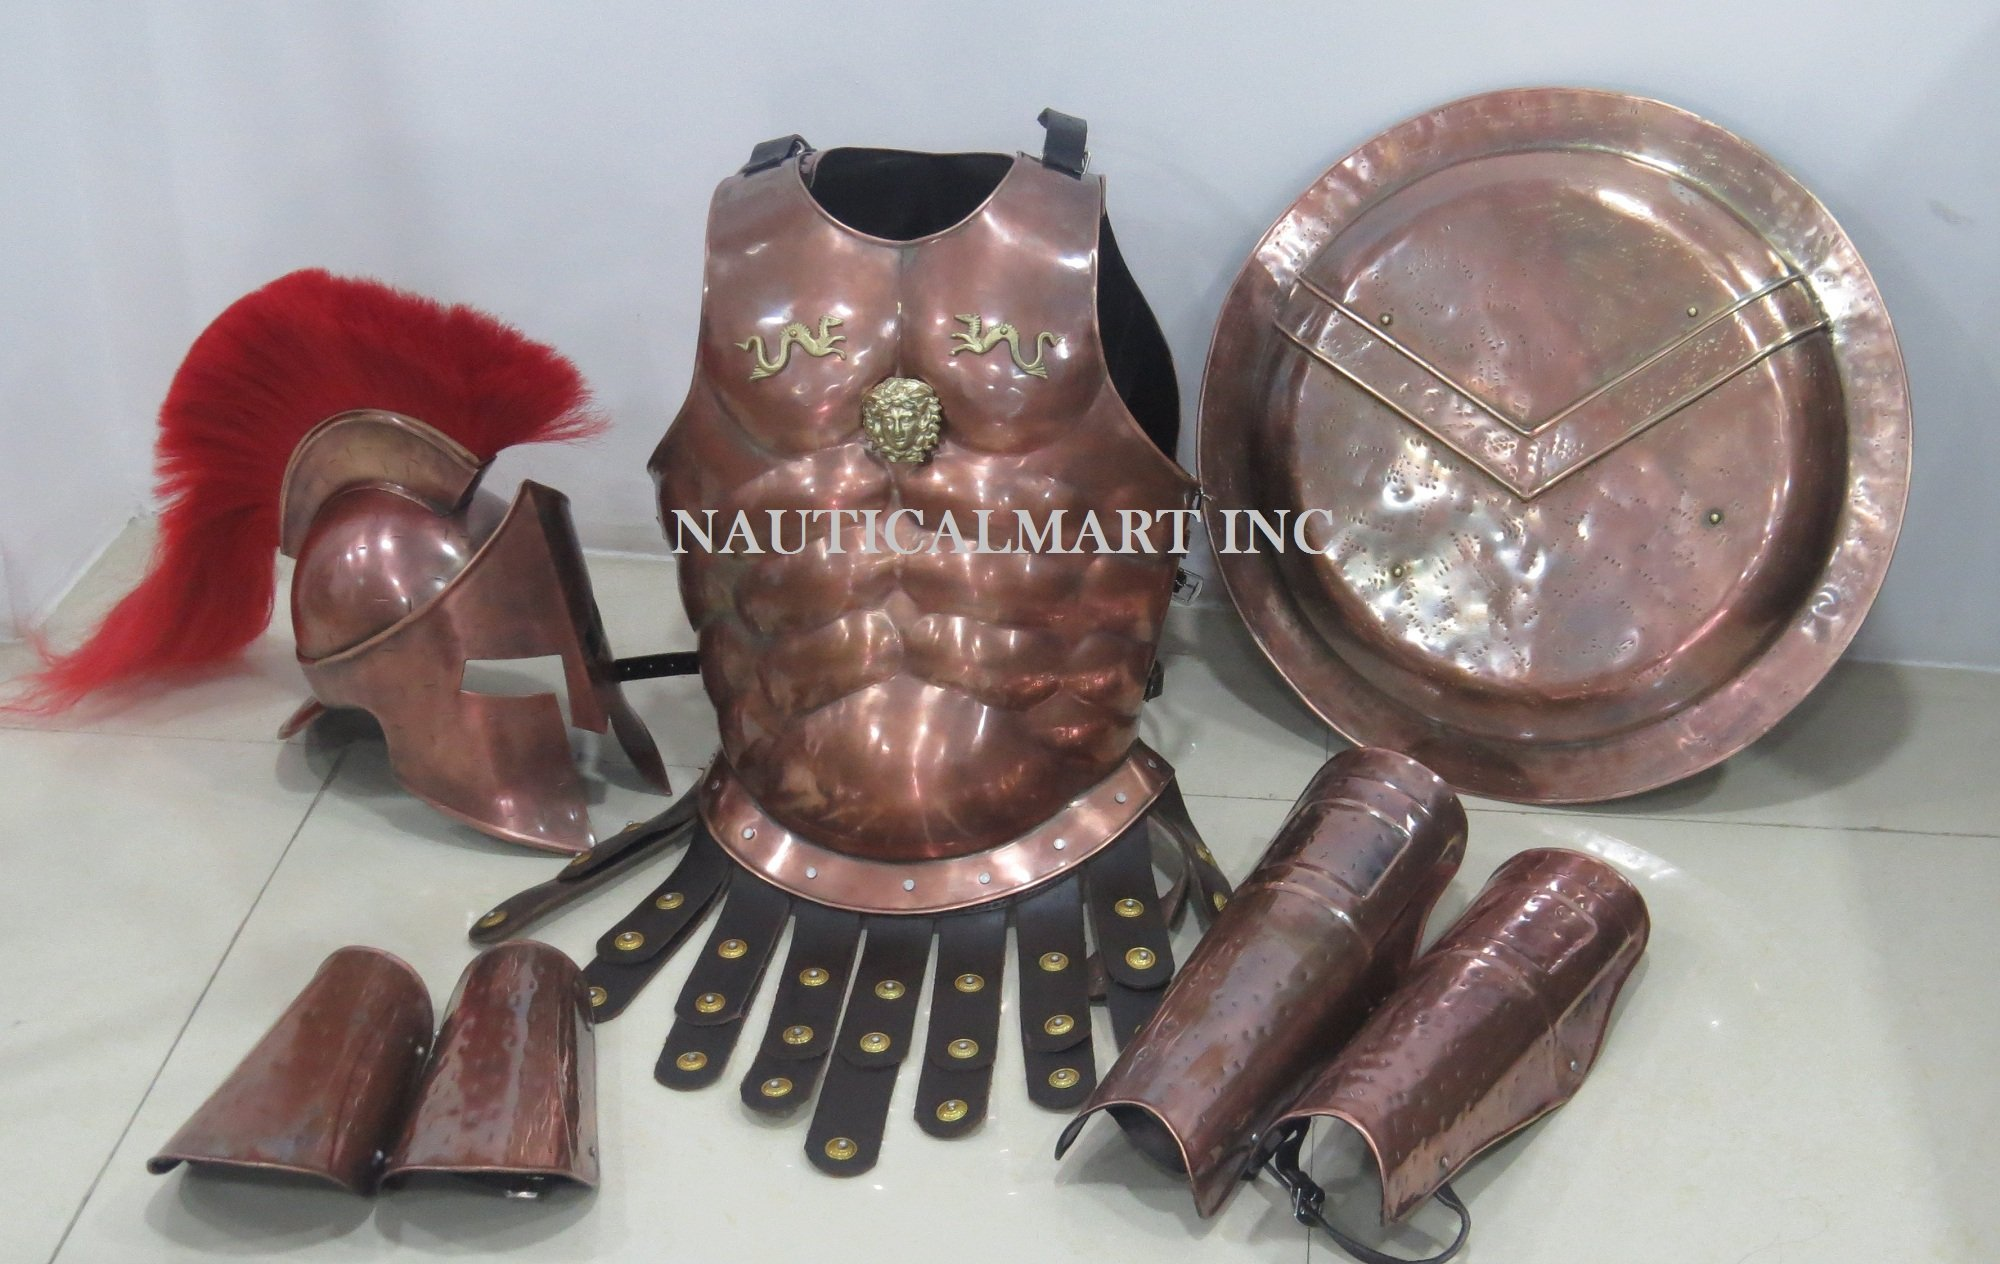 Medieval Spartan Copper 300 Helmet W/ Red Plume Muscle Armor by Nauticalmart by NAUTICALMART (Image #2)